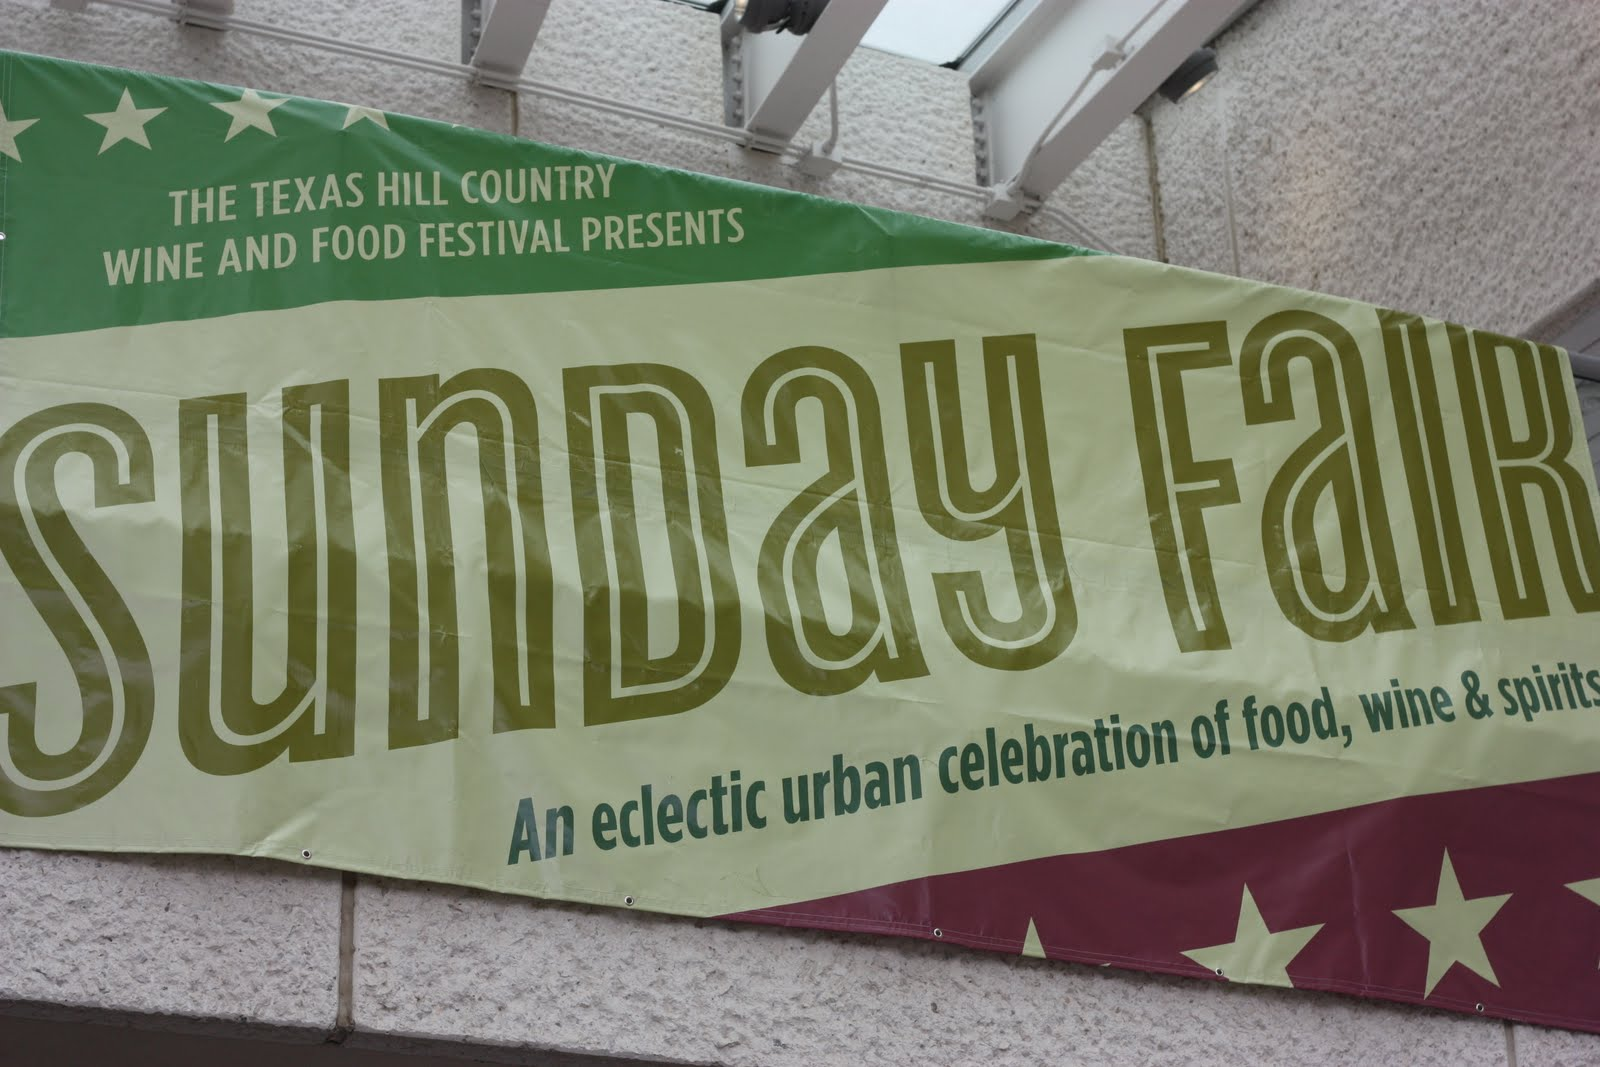 Sunday Fair @ The Texas Hill Country Food & Wine Festival